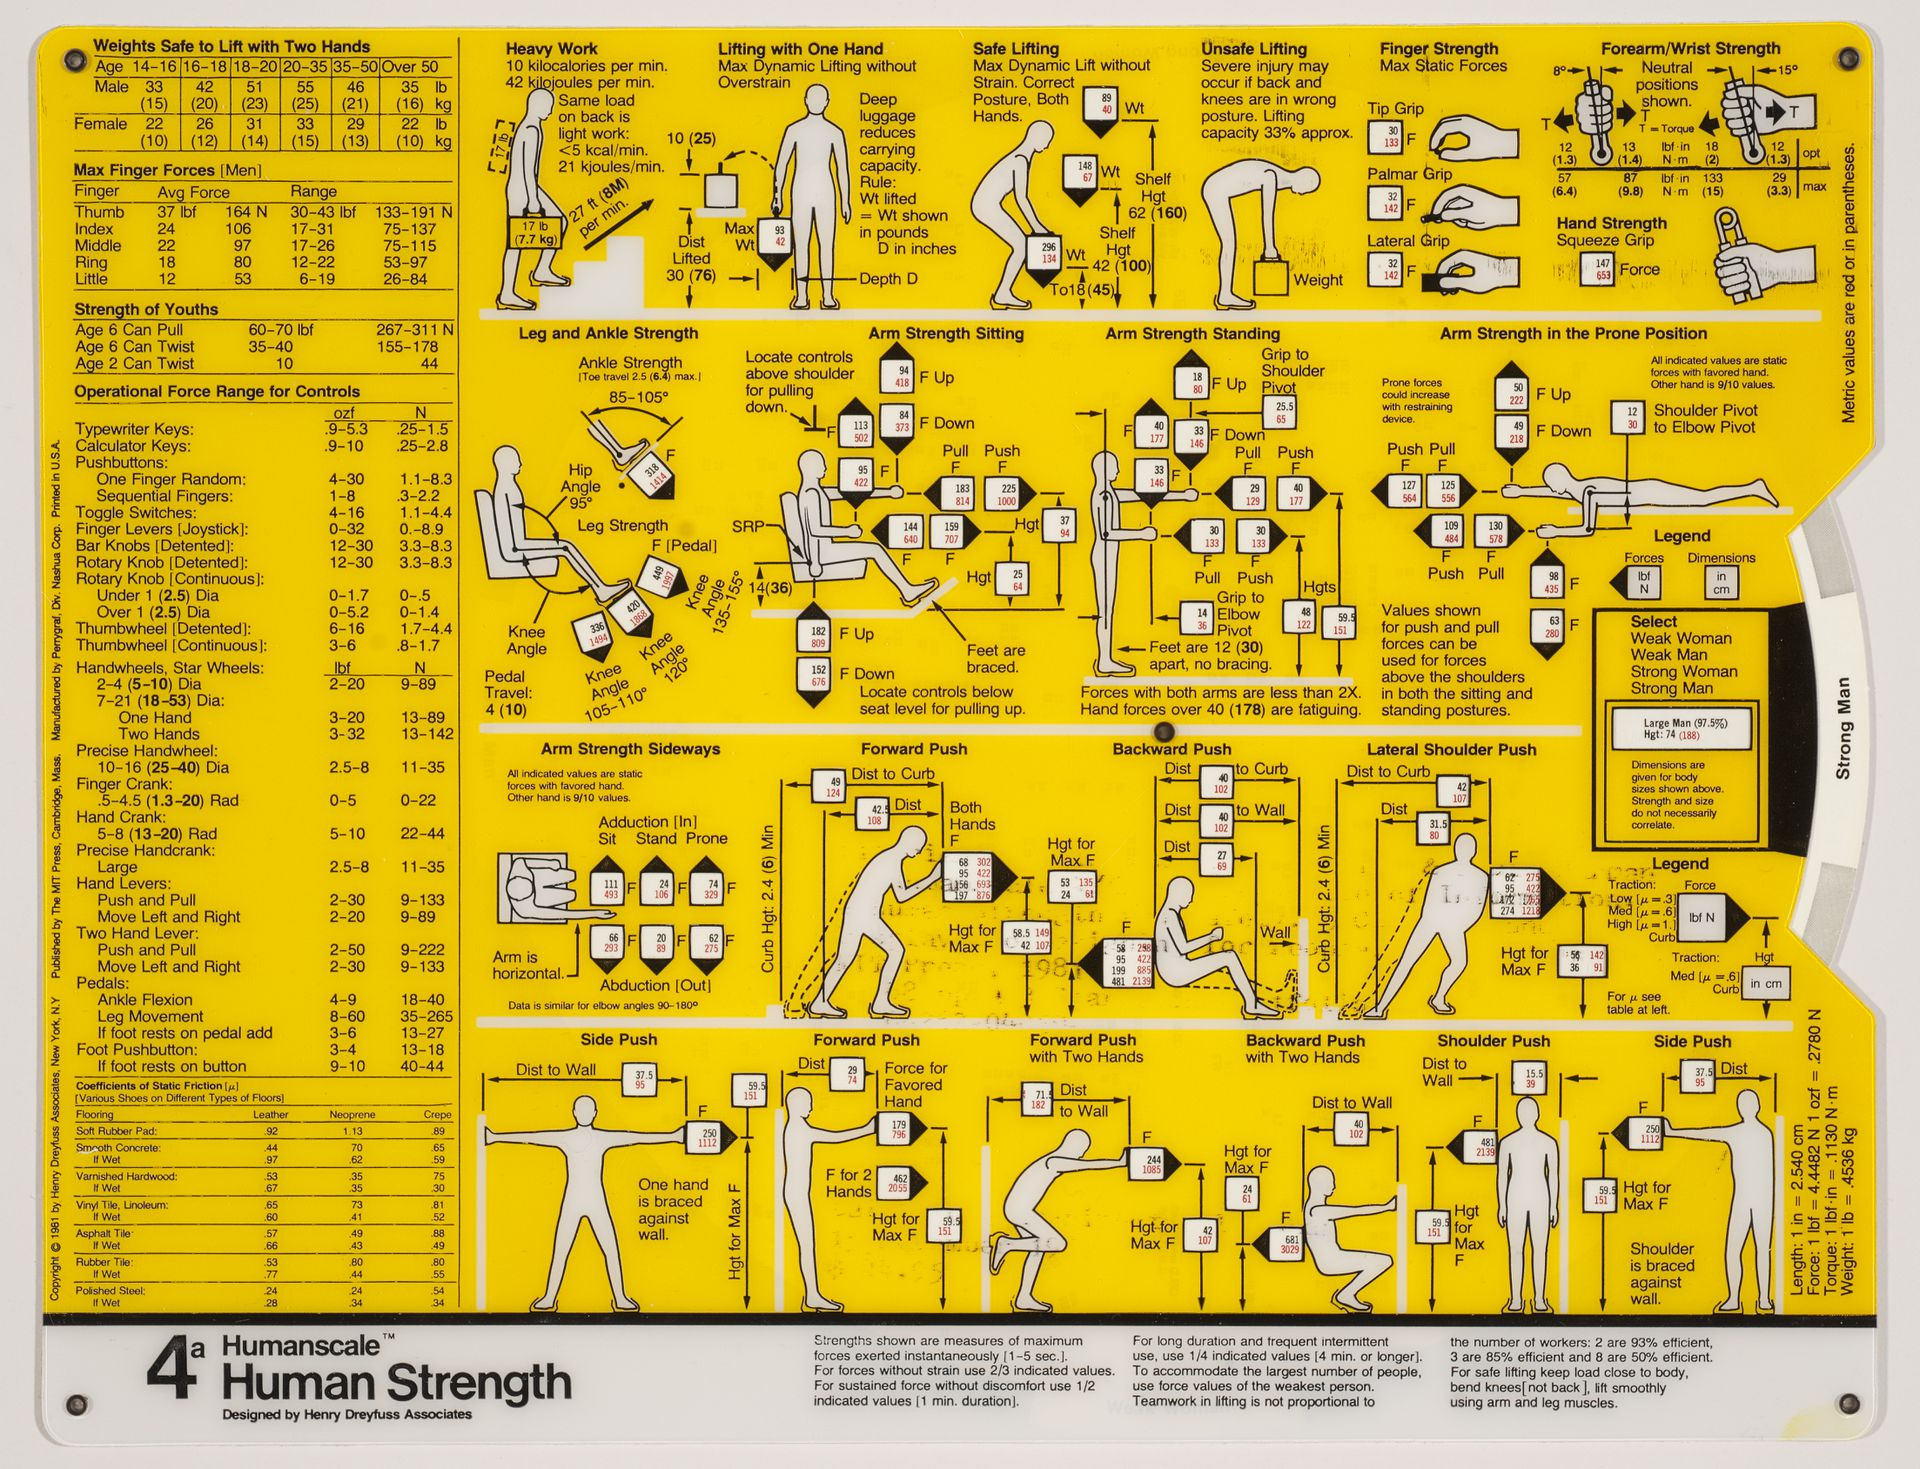 Demedicalize Architecture Mercedes Benz Wiring Diagrams W107 Alvin R Tilley And Joan C Bardagiy Humanscale 4 5 6 A Portfolio Of Information Cambridge Ma Mit Press 1974 Diagram 4a Ta166d5 Id86 B8384